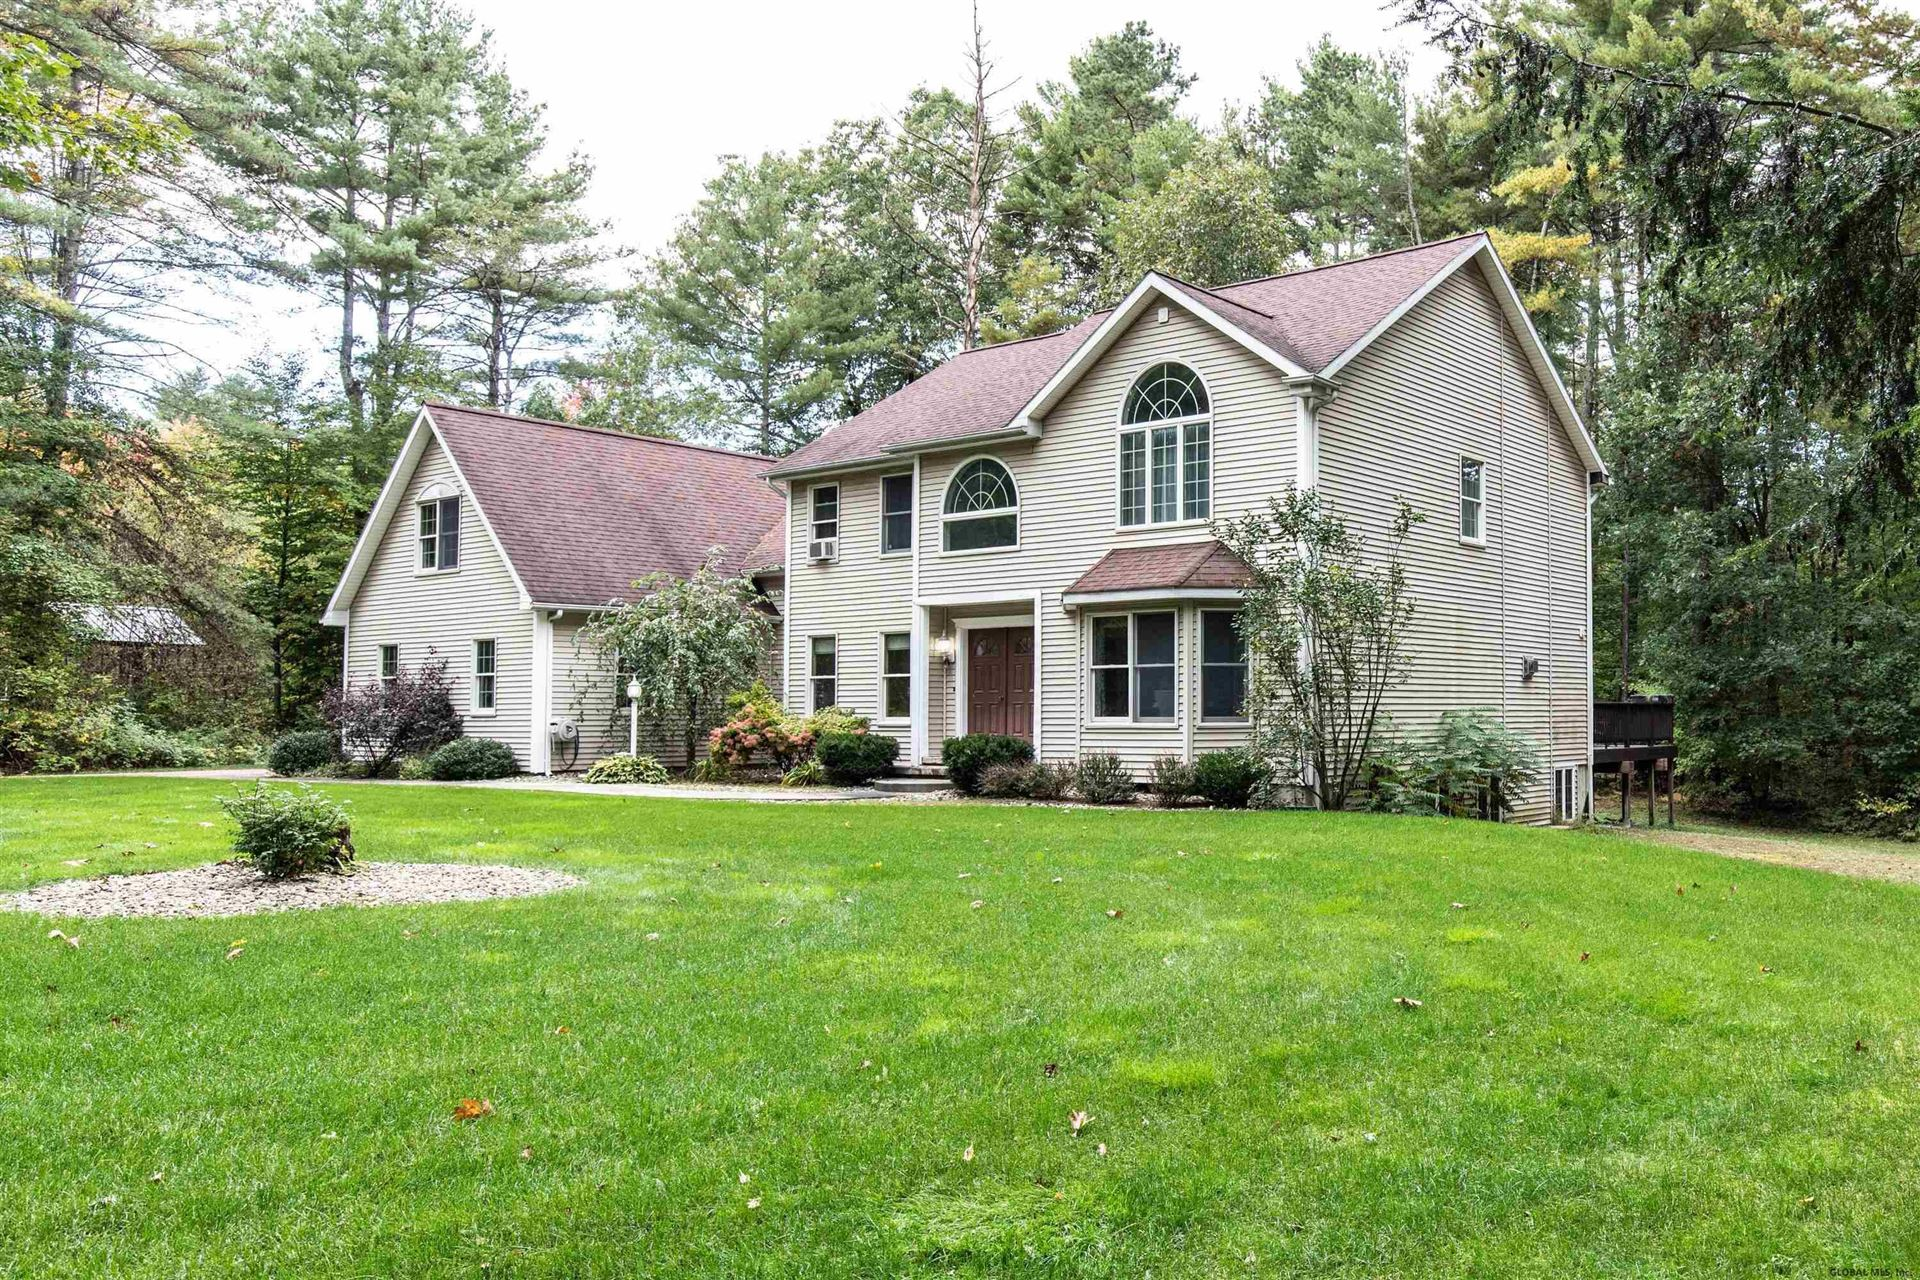 73 PITCHER RD                                                                               Queensbury                                                                      , NY - $449,000